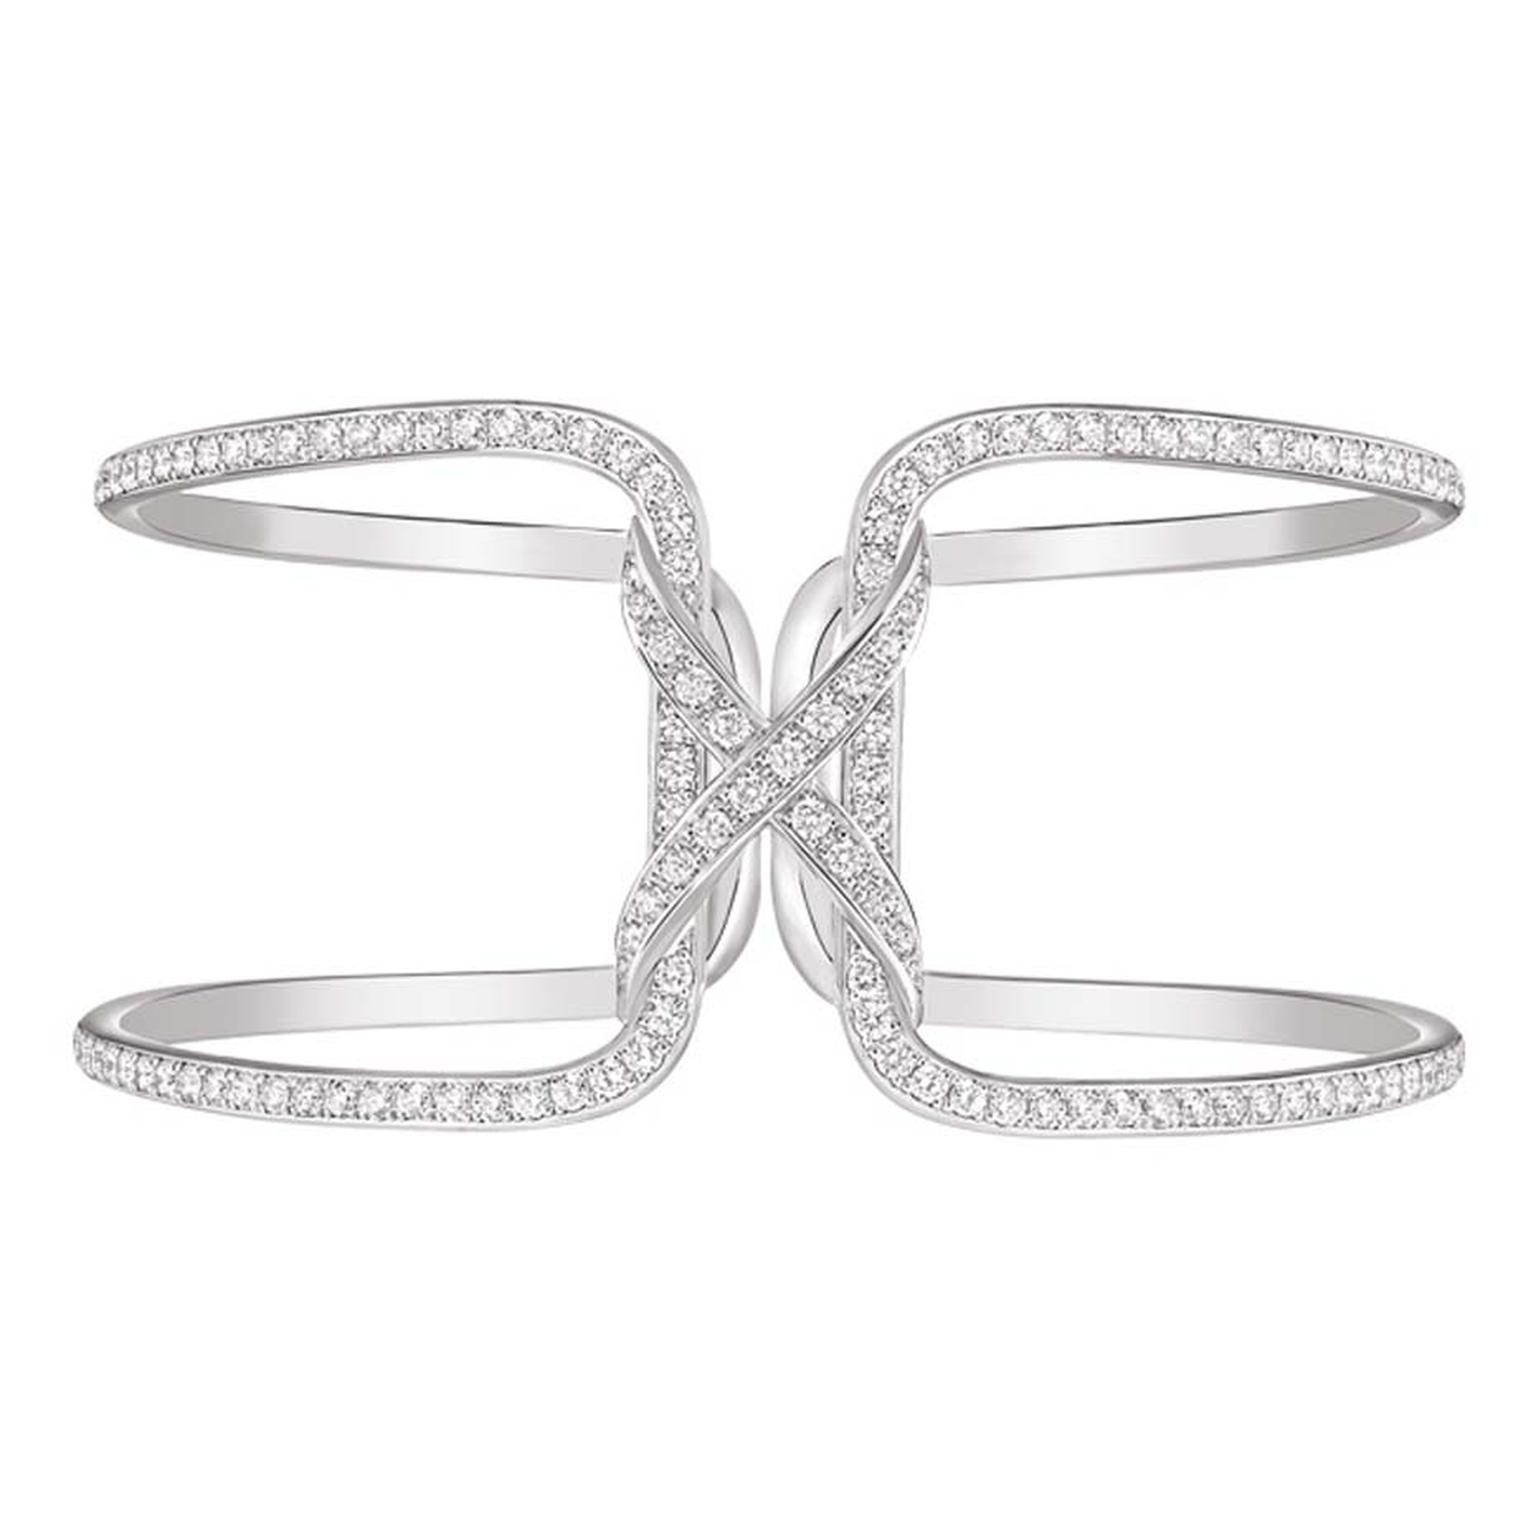 Chaumet Liens cuff in rhodium-plated white gold, set with 228 brilliant-cut diamonds.